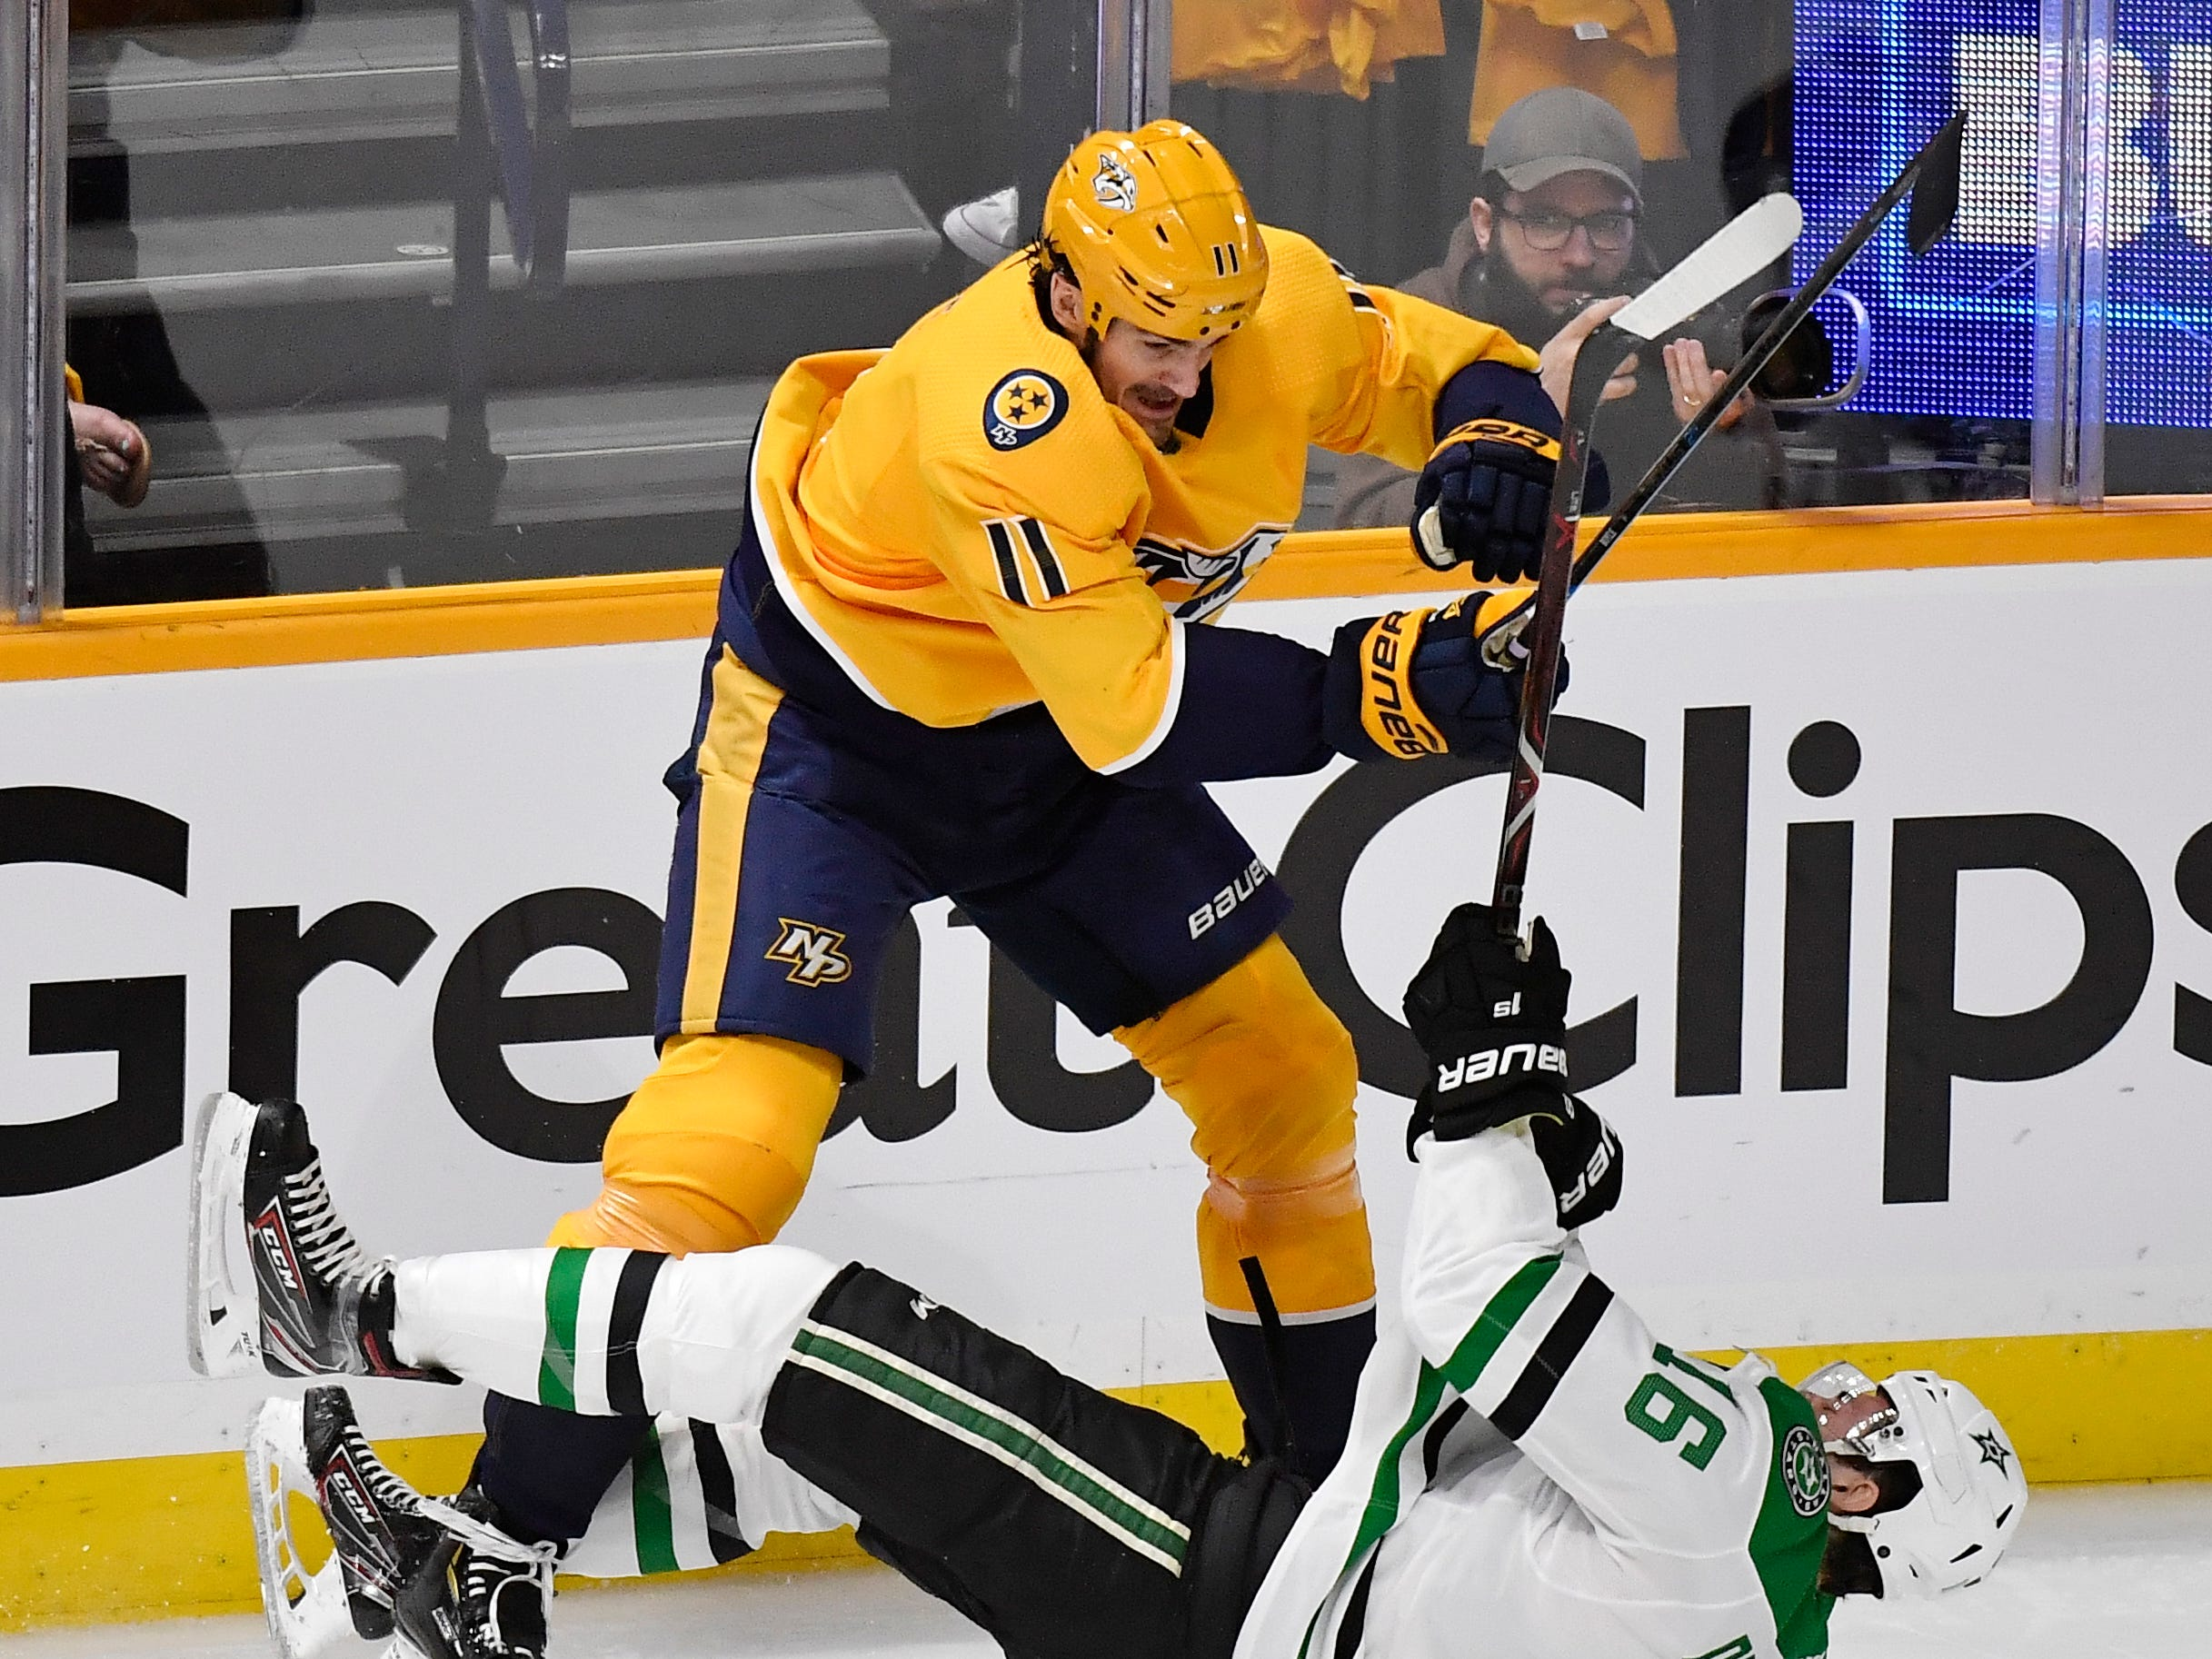 Dallas Stars center Jason Dickinson (16) falls after a hit by Nashville Predators center Brian Boyle (11) during the first period of the divisional semifinal game at Bridgestone Arena in Nashville, Tenn., Wednesday, April 10, 2019.